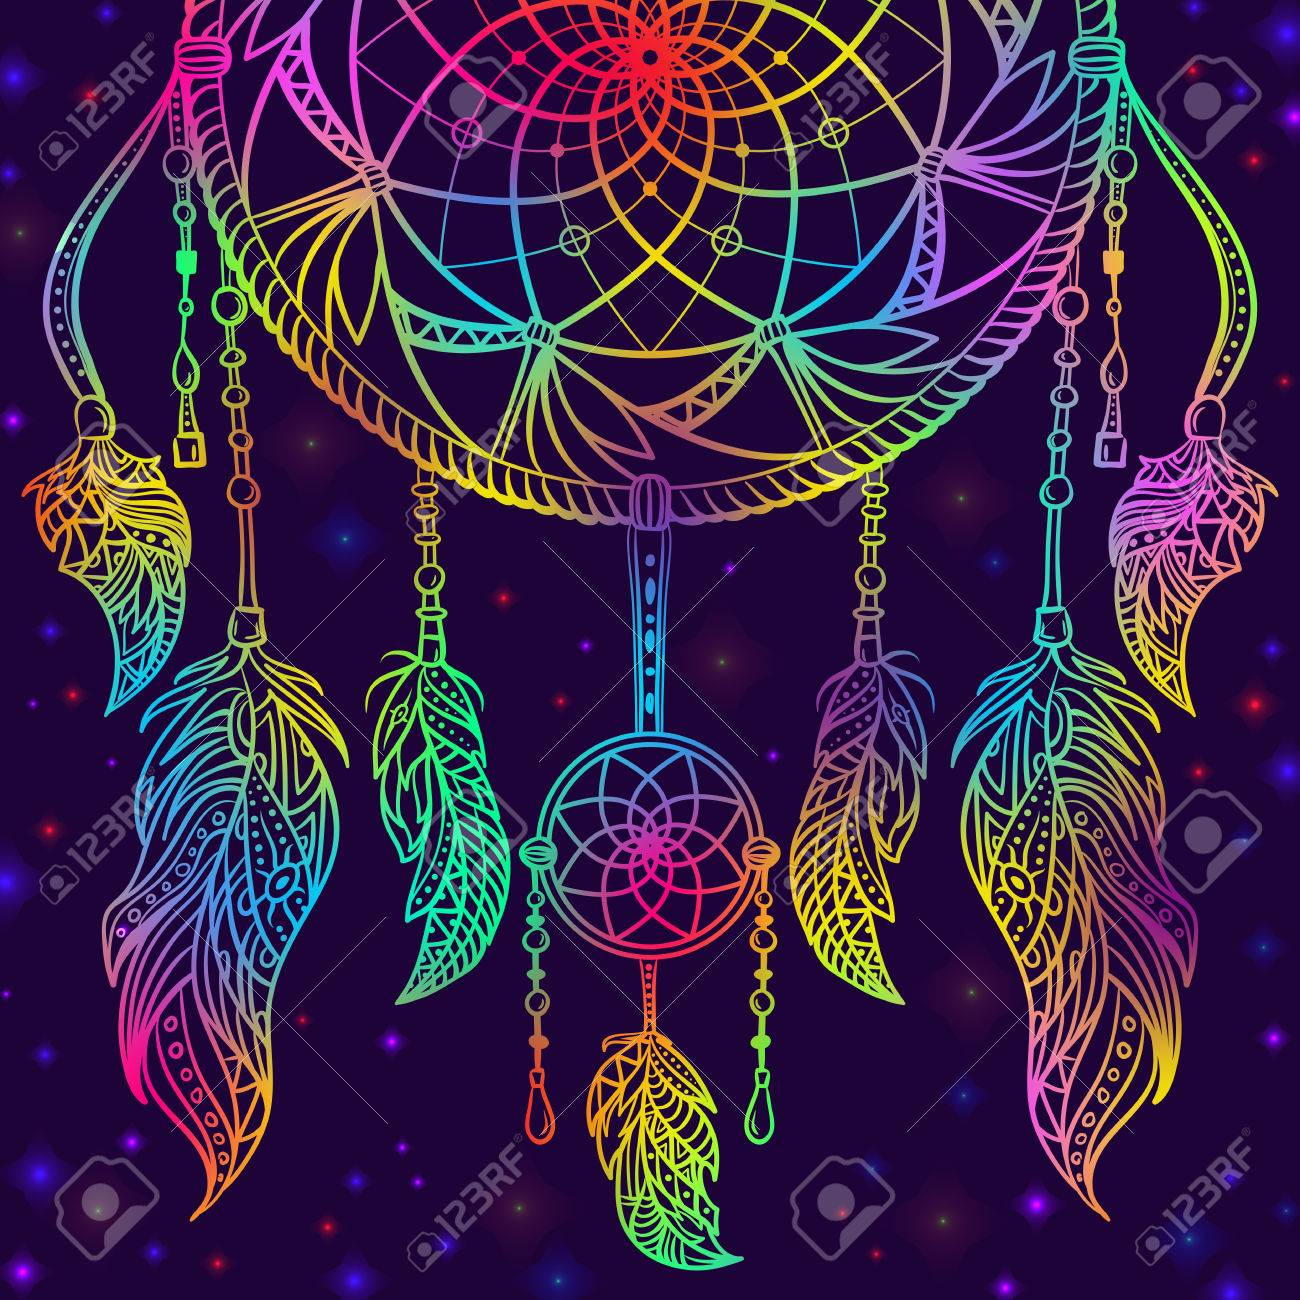 - Colorful Dream Catcher With Ornament And Night Sky With Stars